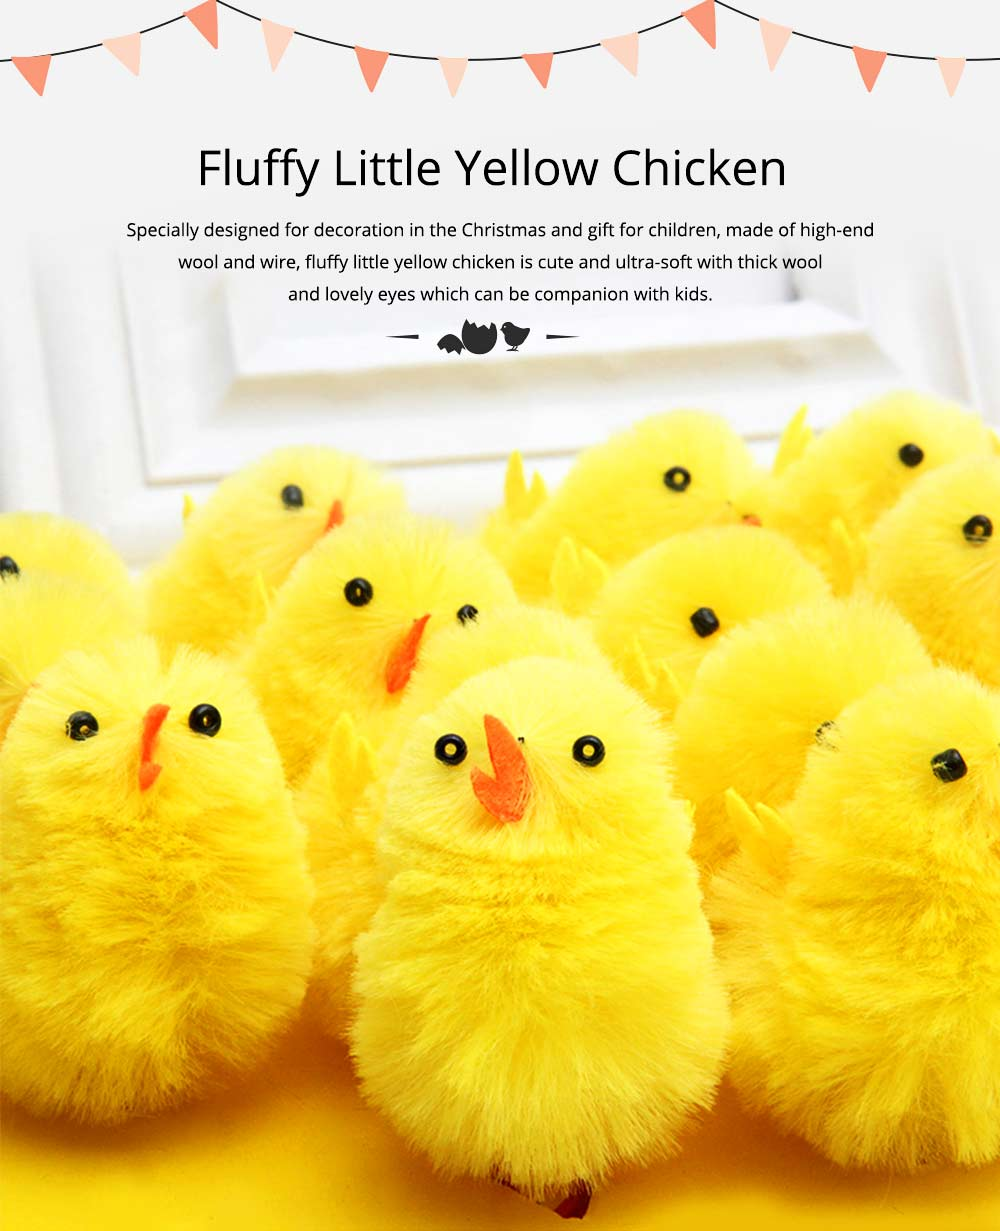 Fluffy Little Yellow Chicken with Lovely Eyes and Standing Posture, Easter Decorations, Children's Easter Gift 0